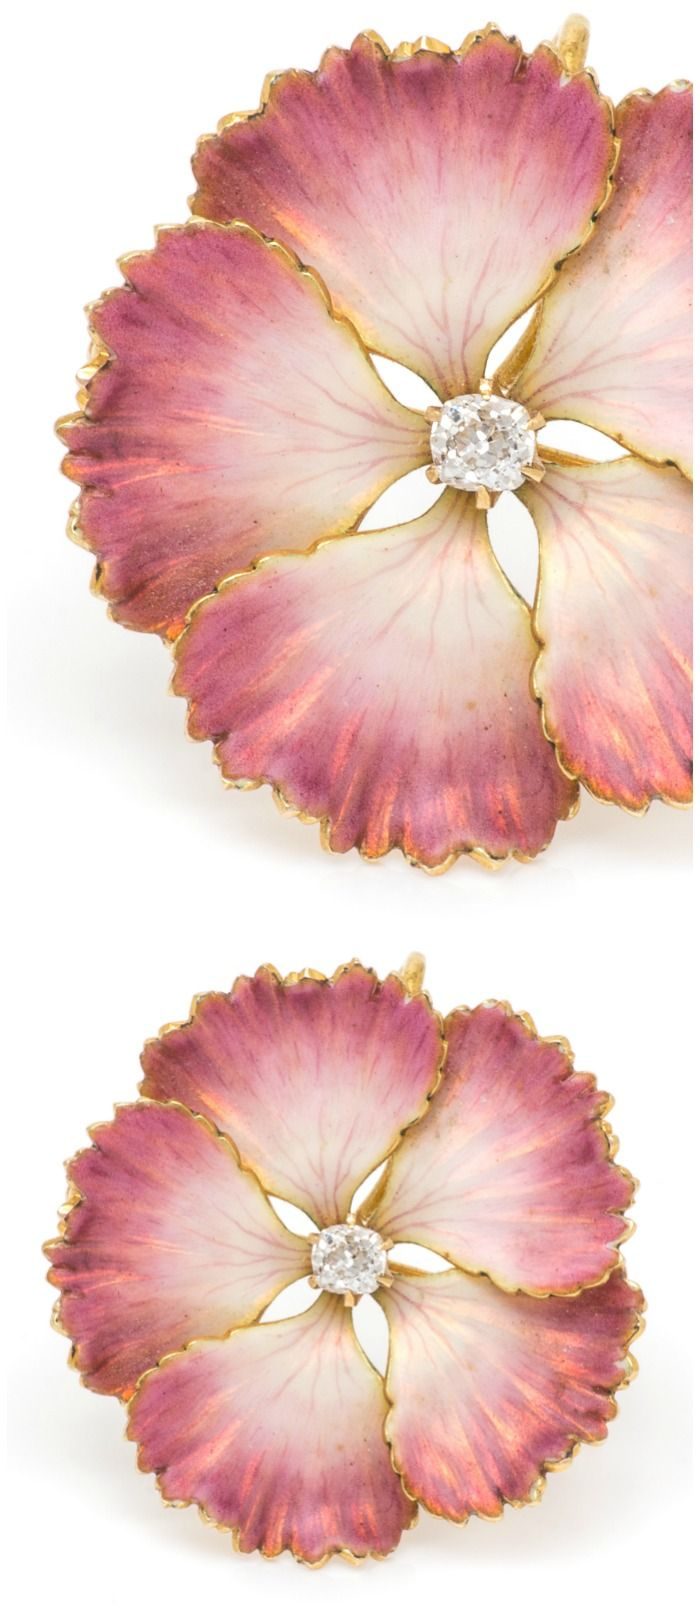 1052 best Antique Jewelry images on Pinterest | Brooches ...